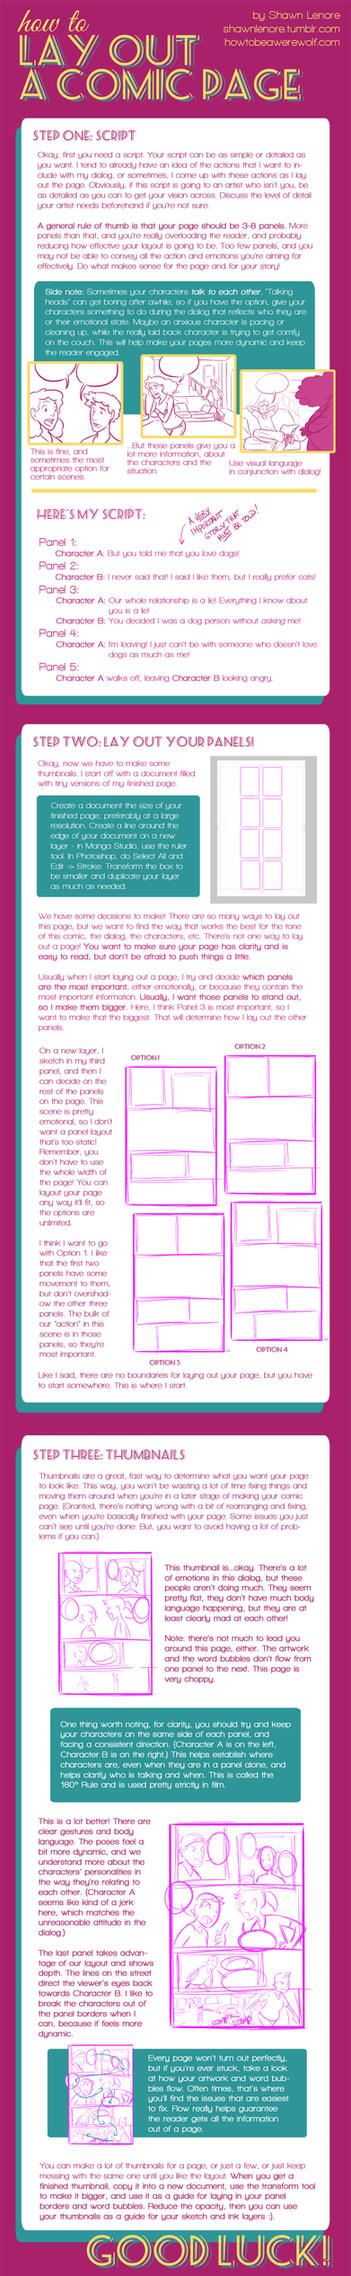 How to Lay Out a Comic Page by misshatter